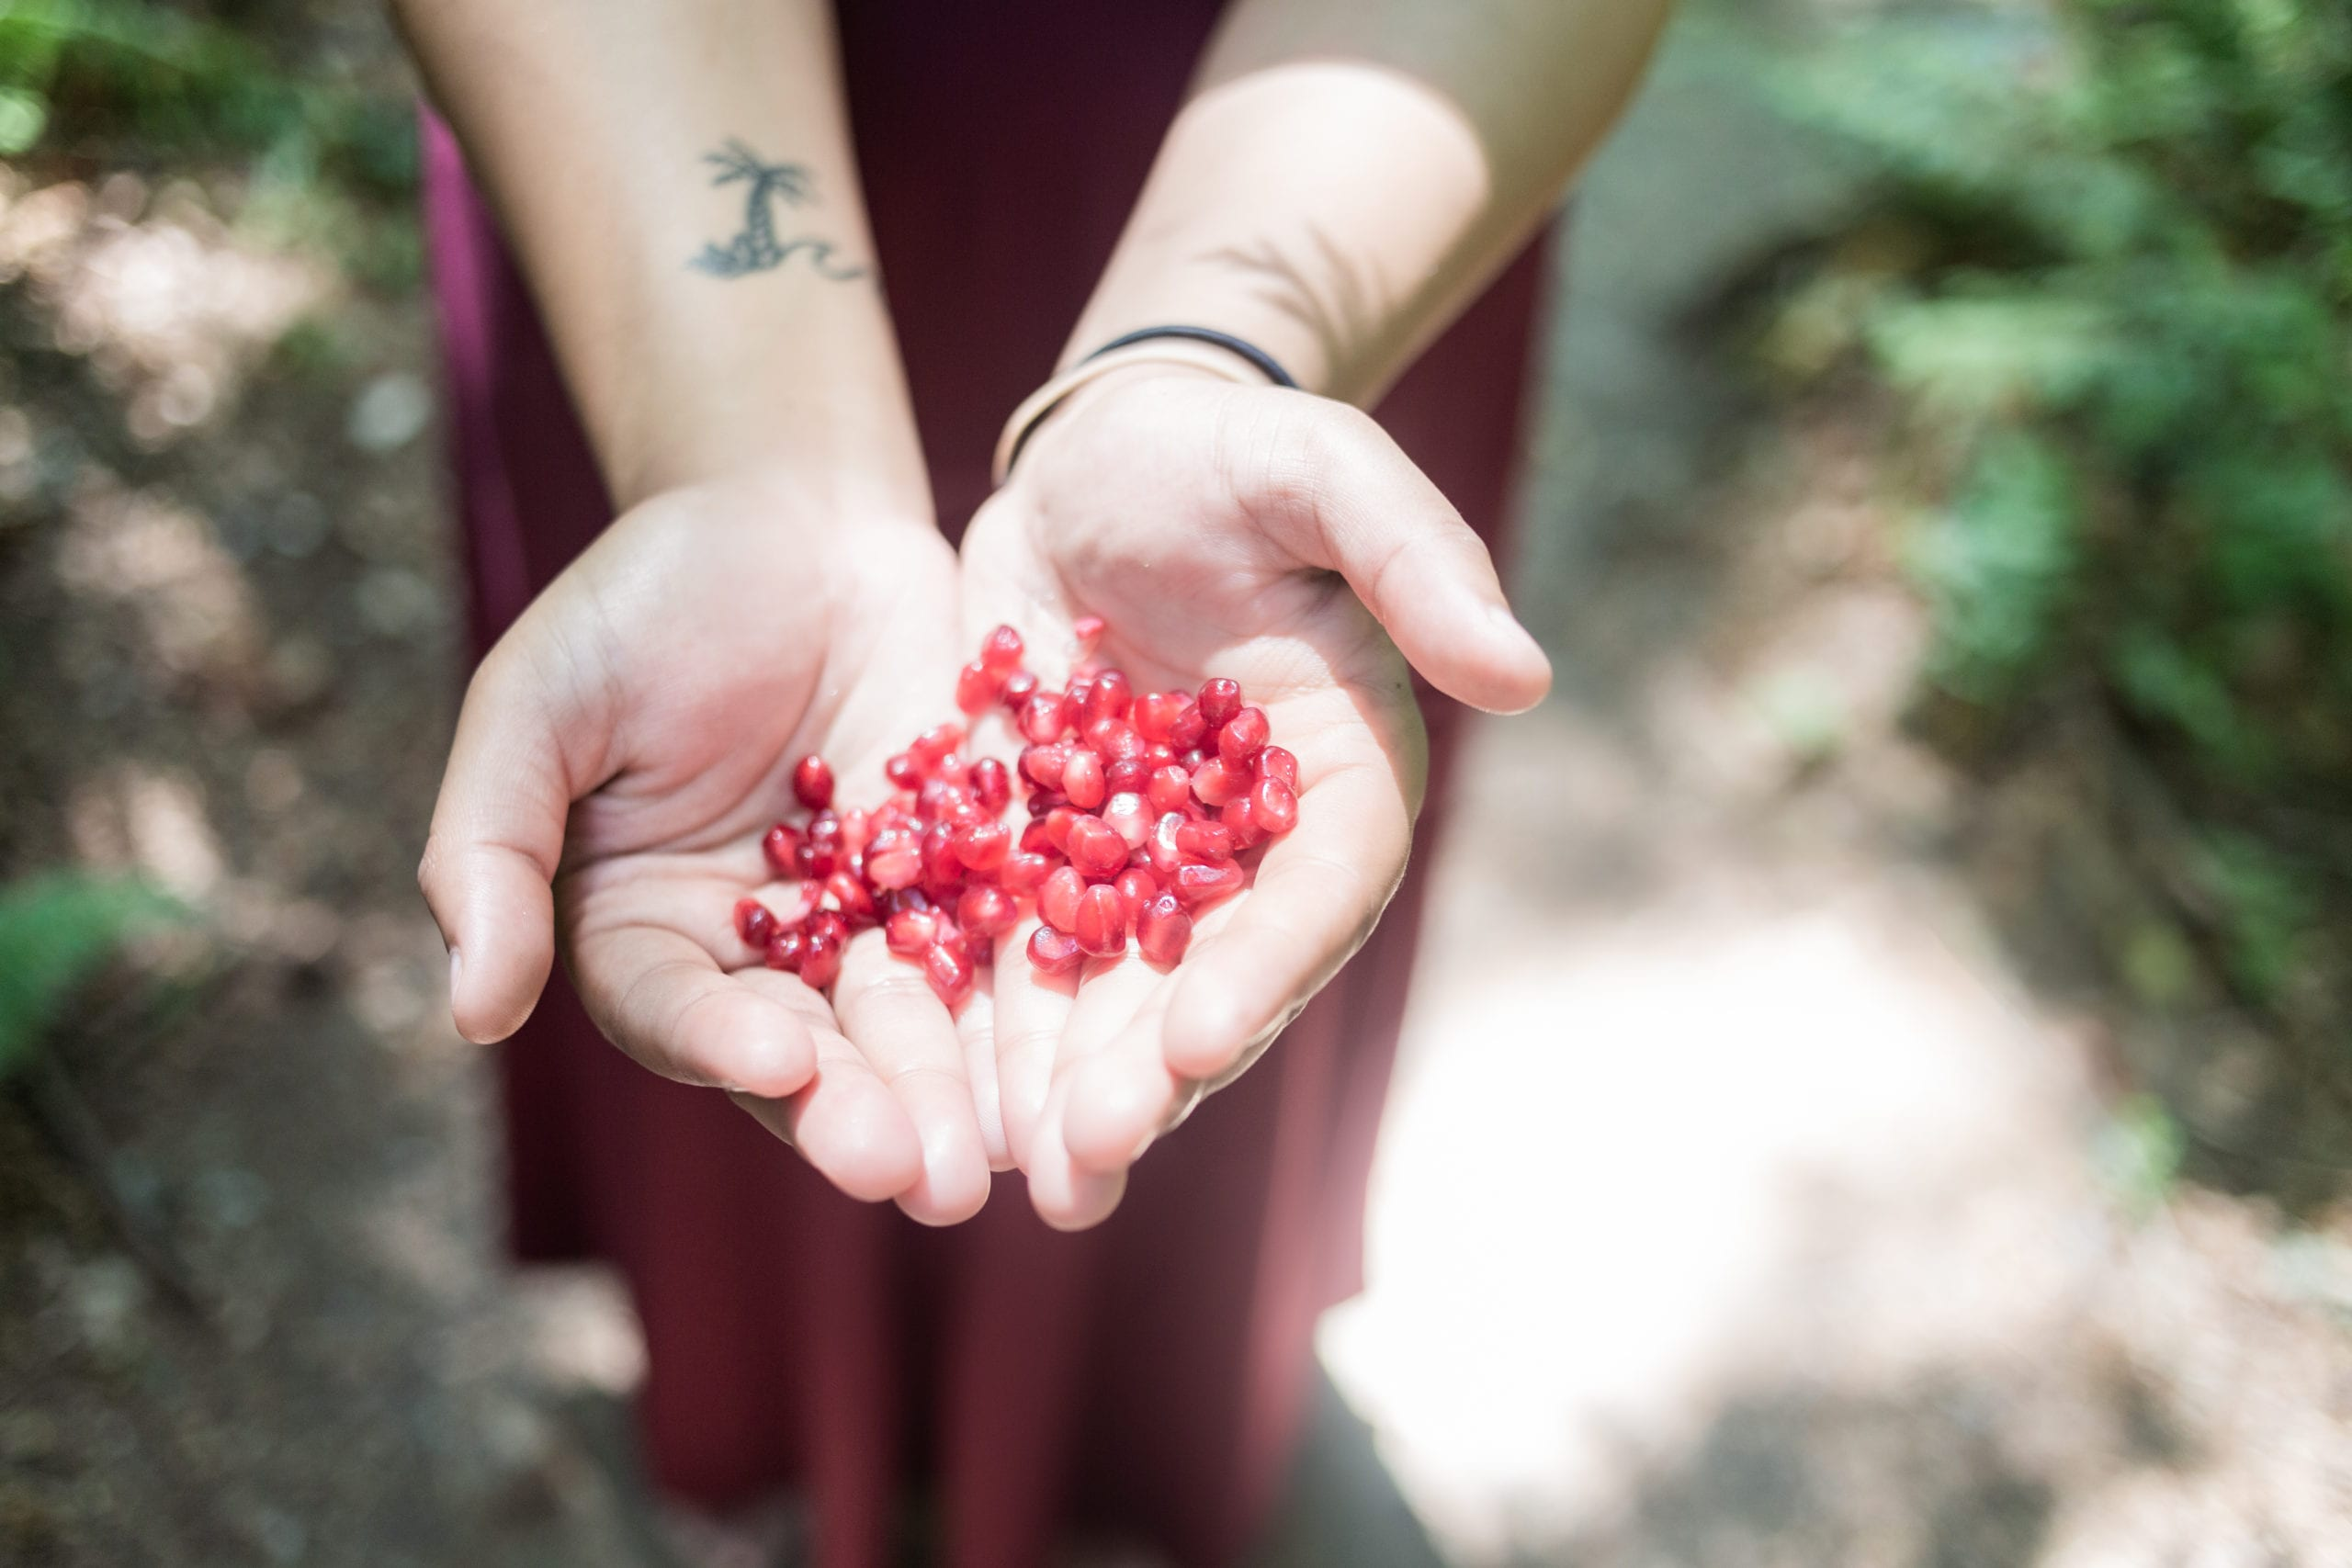 Persephone holding pomegranate seeds in her hands.